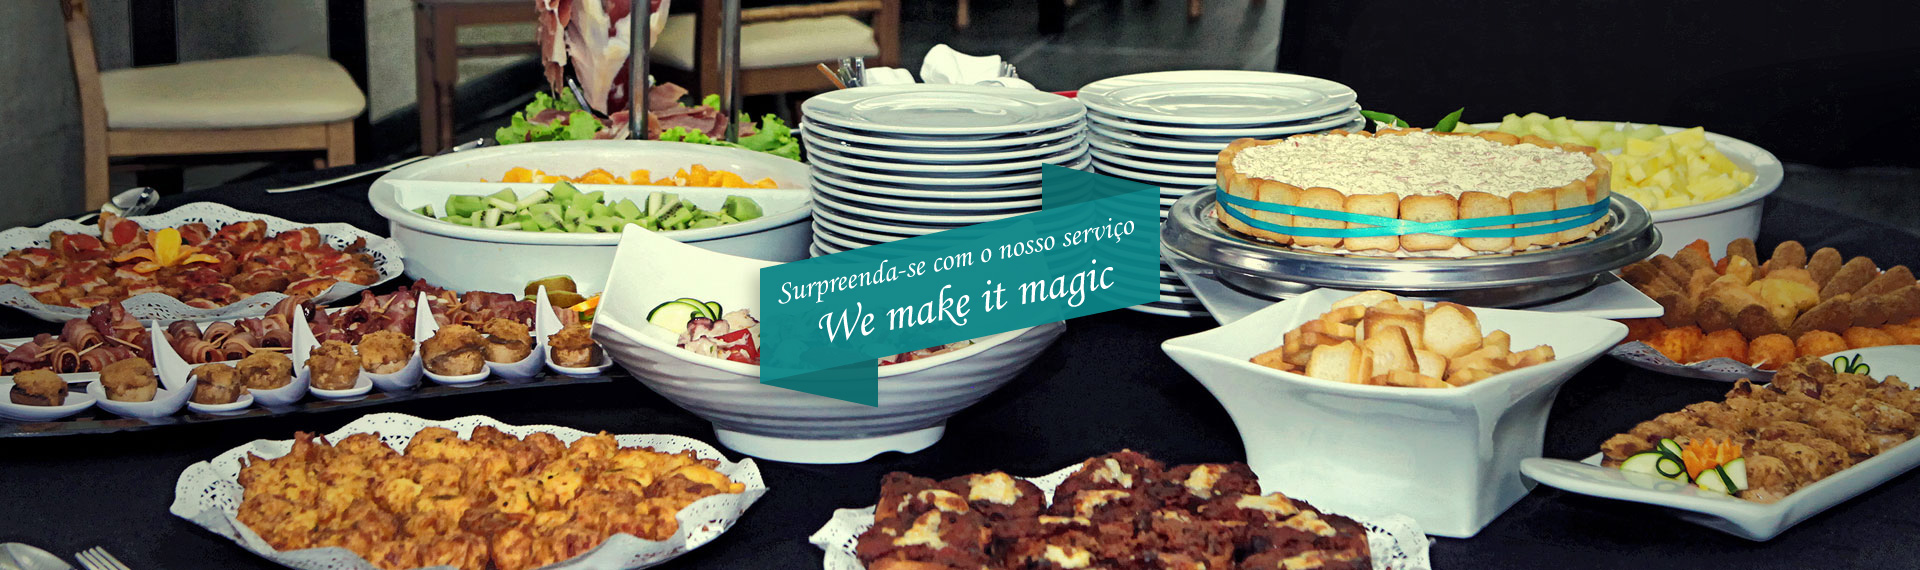 We make it magic | Quinta do Cisne